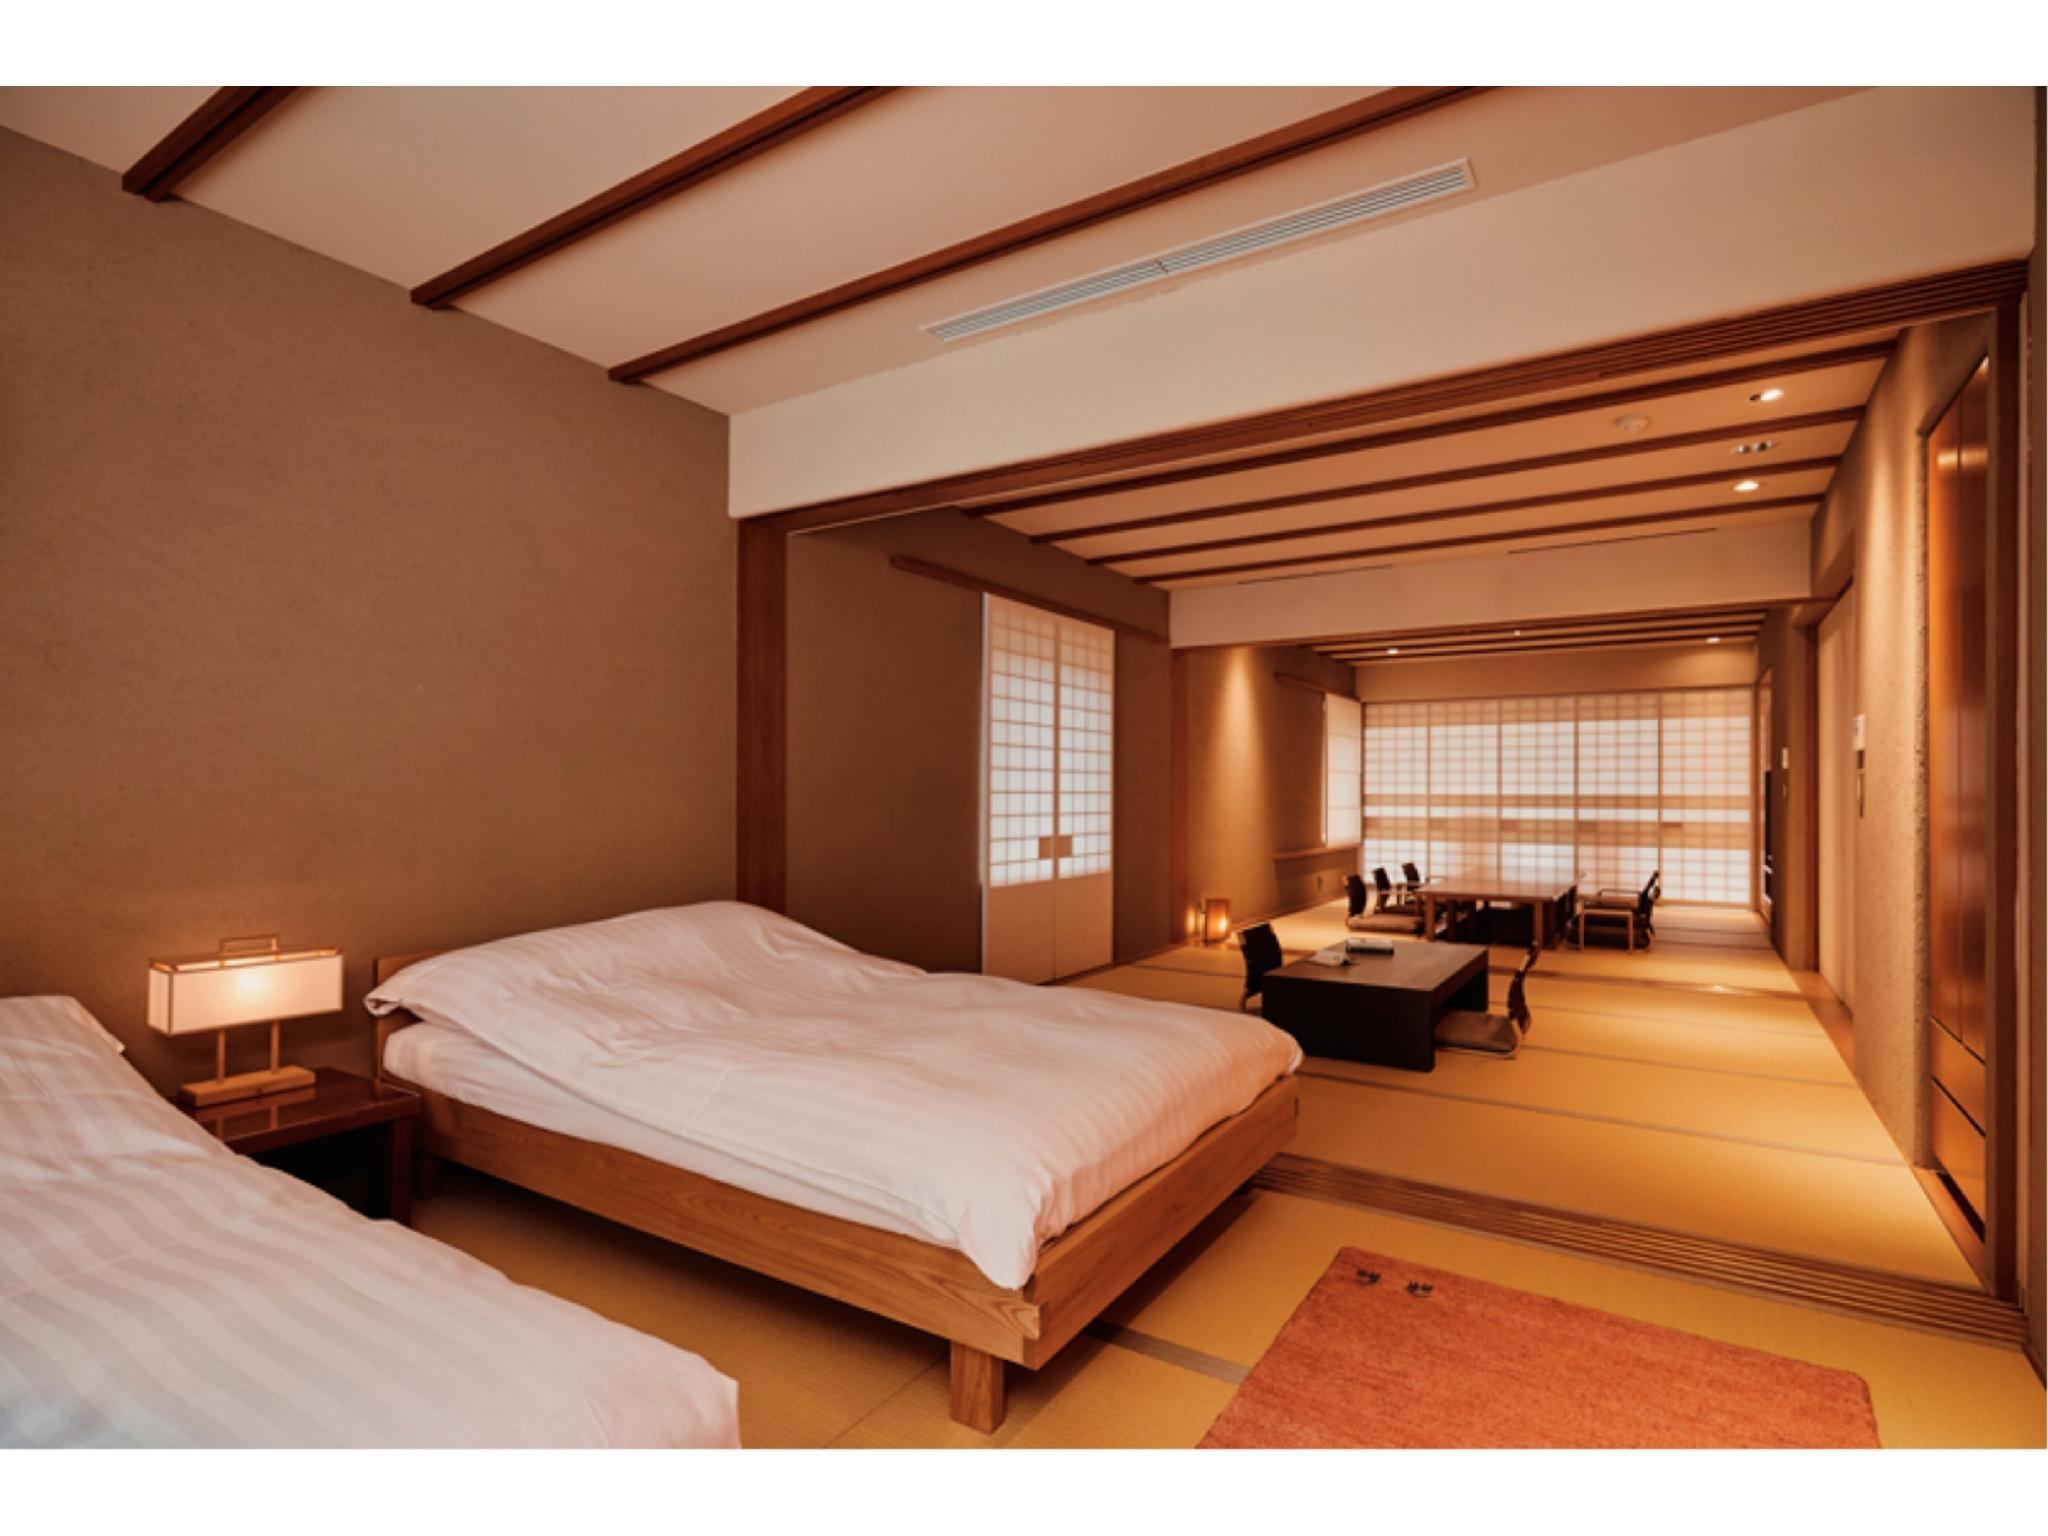 프리미엄 스위트룸(신관/FUSHA-NO-MA/114호실/온천탕) (Premier Suite with Hot Spring Bath (Room 124, Fusha-no-Ma Type, New Building))